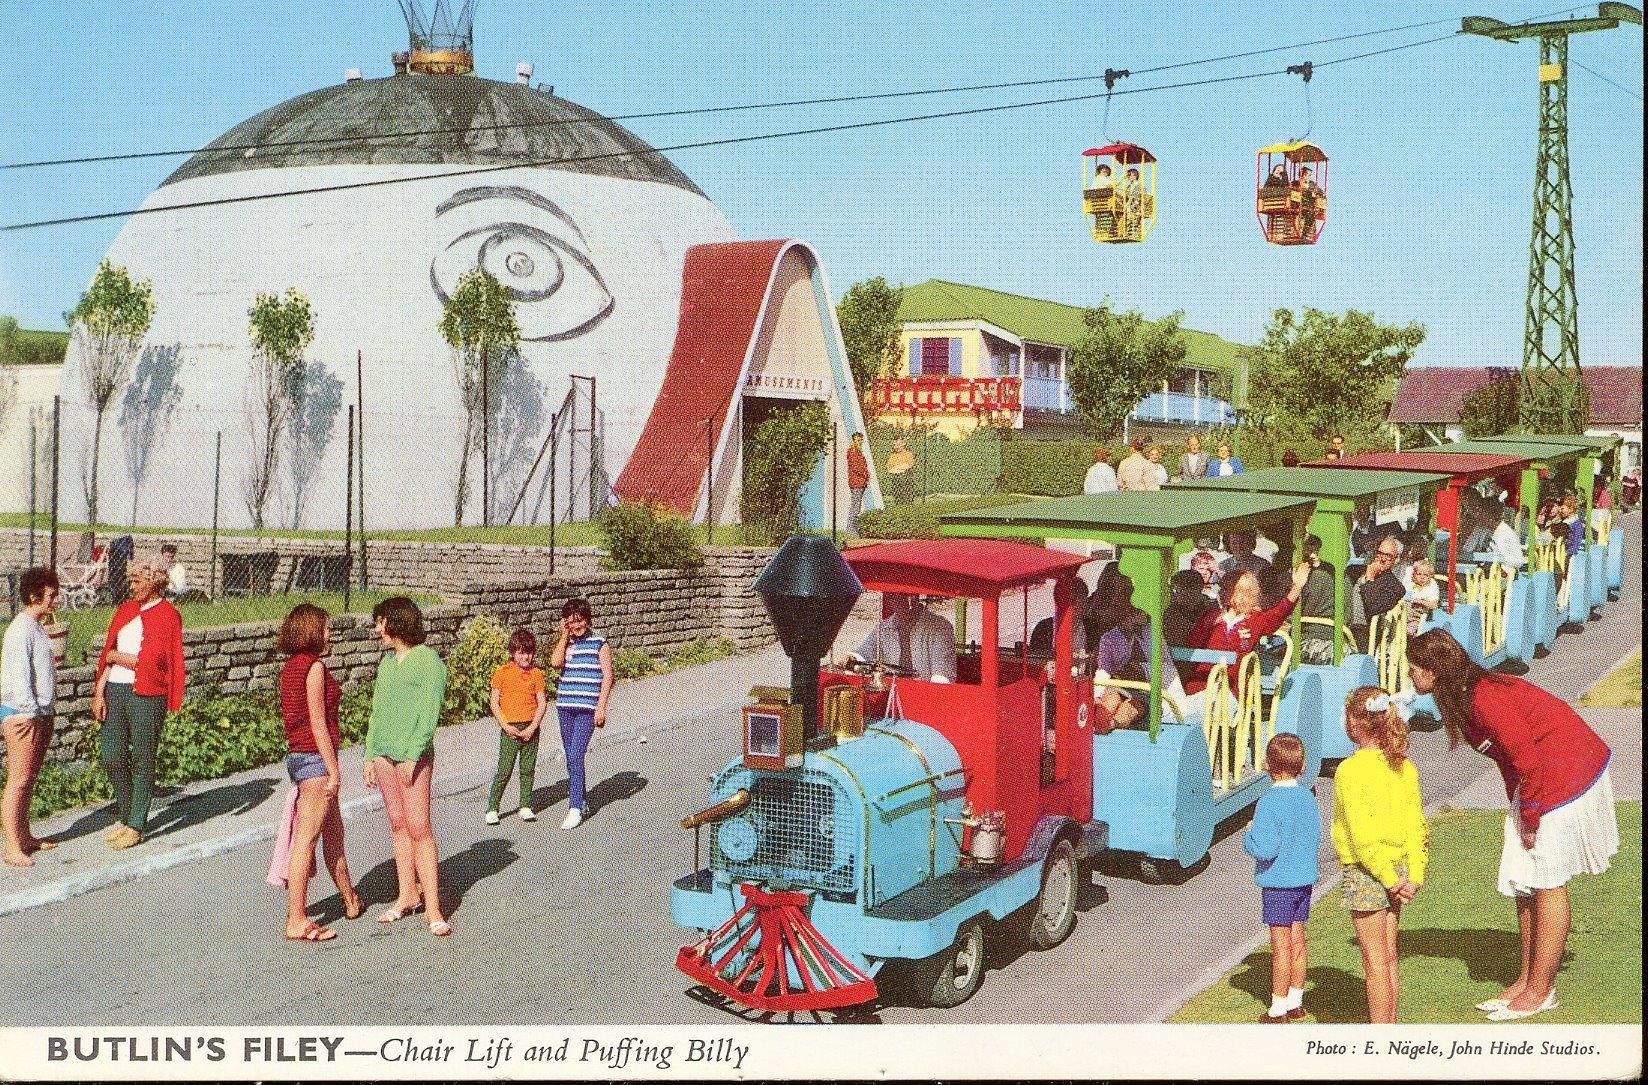 Butlins Filey - Chair Lift & Puffing Billy